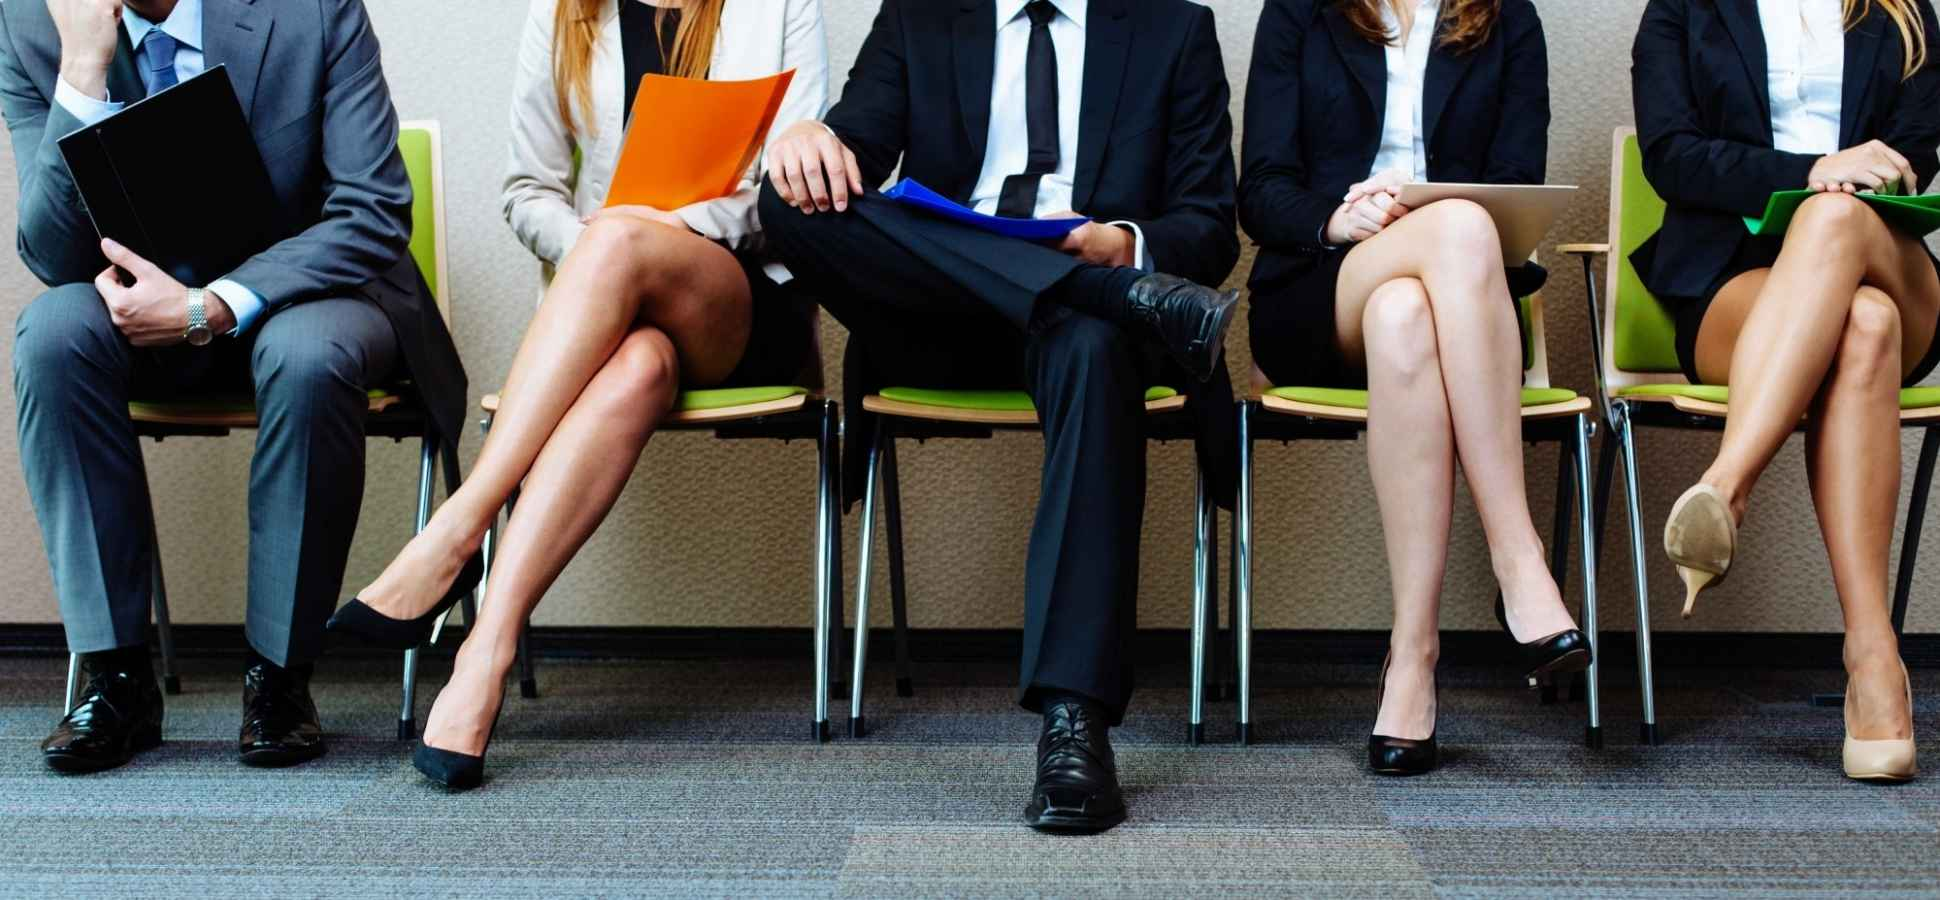 How Your Leadership Style Affects Your Ability to Recruit and Retain Employees